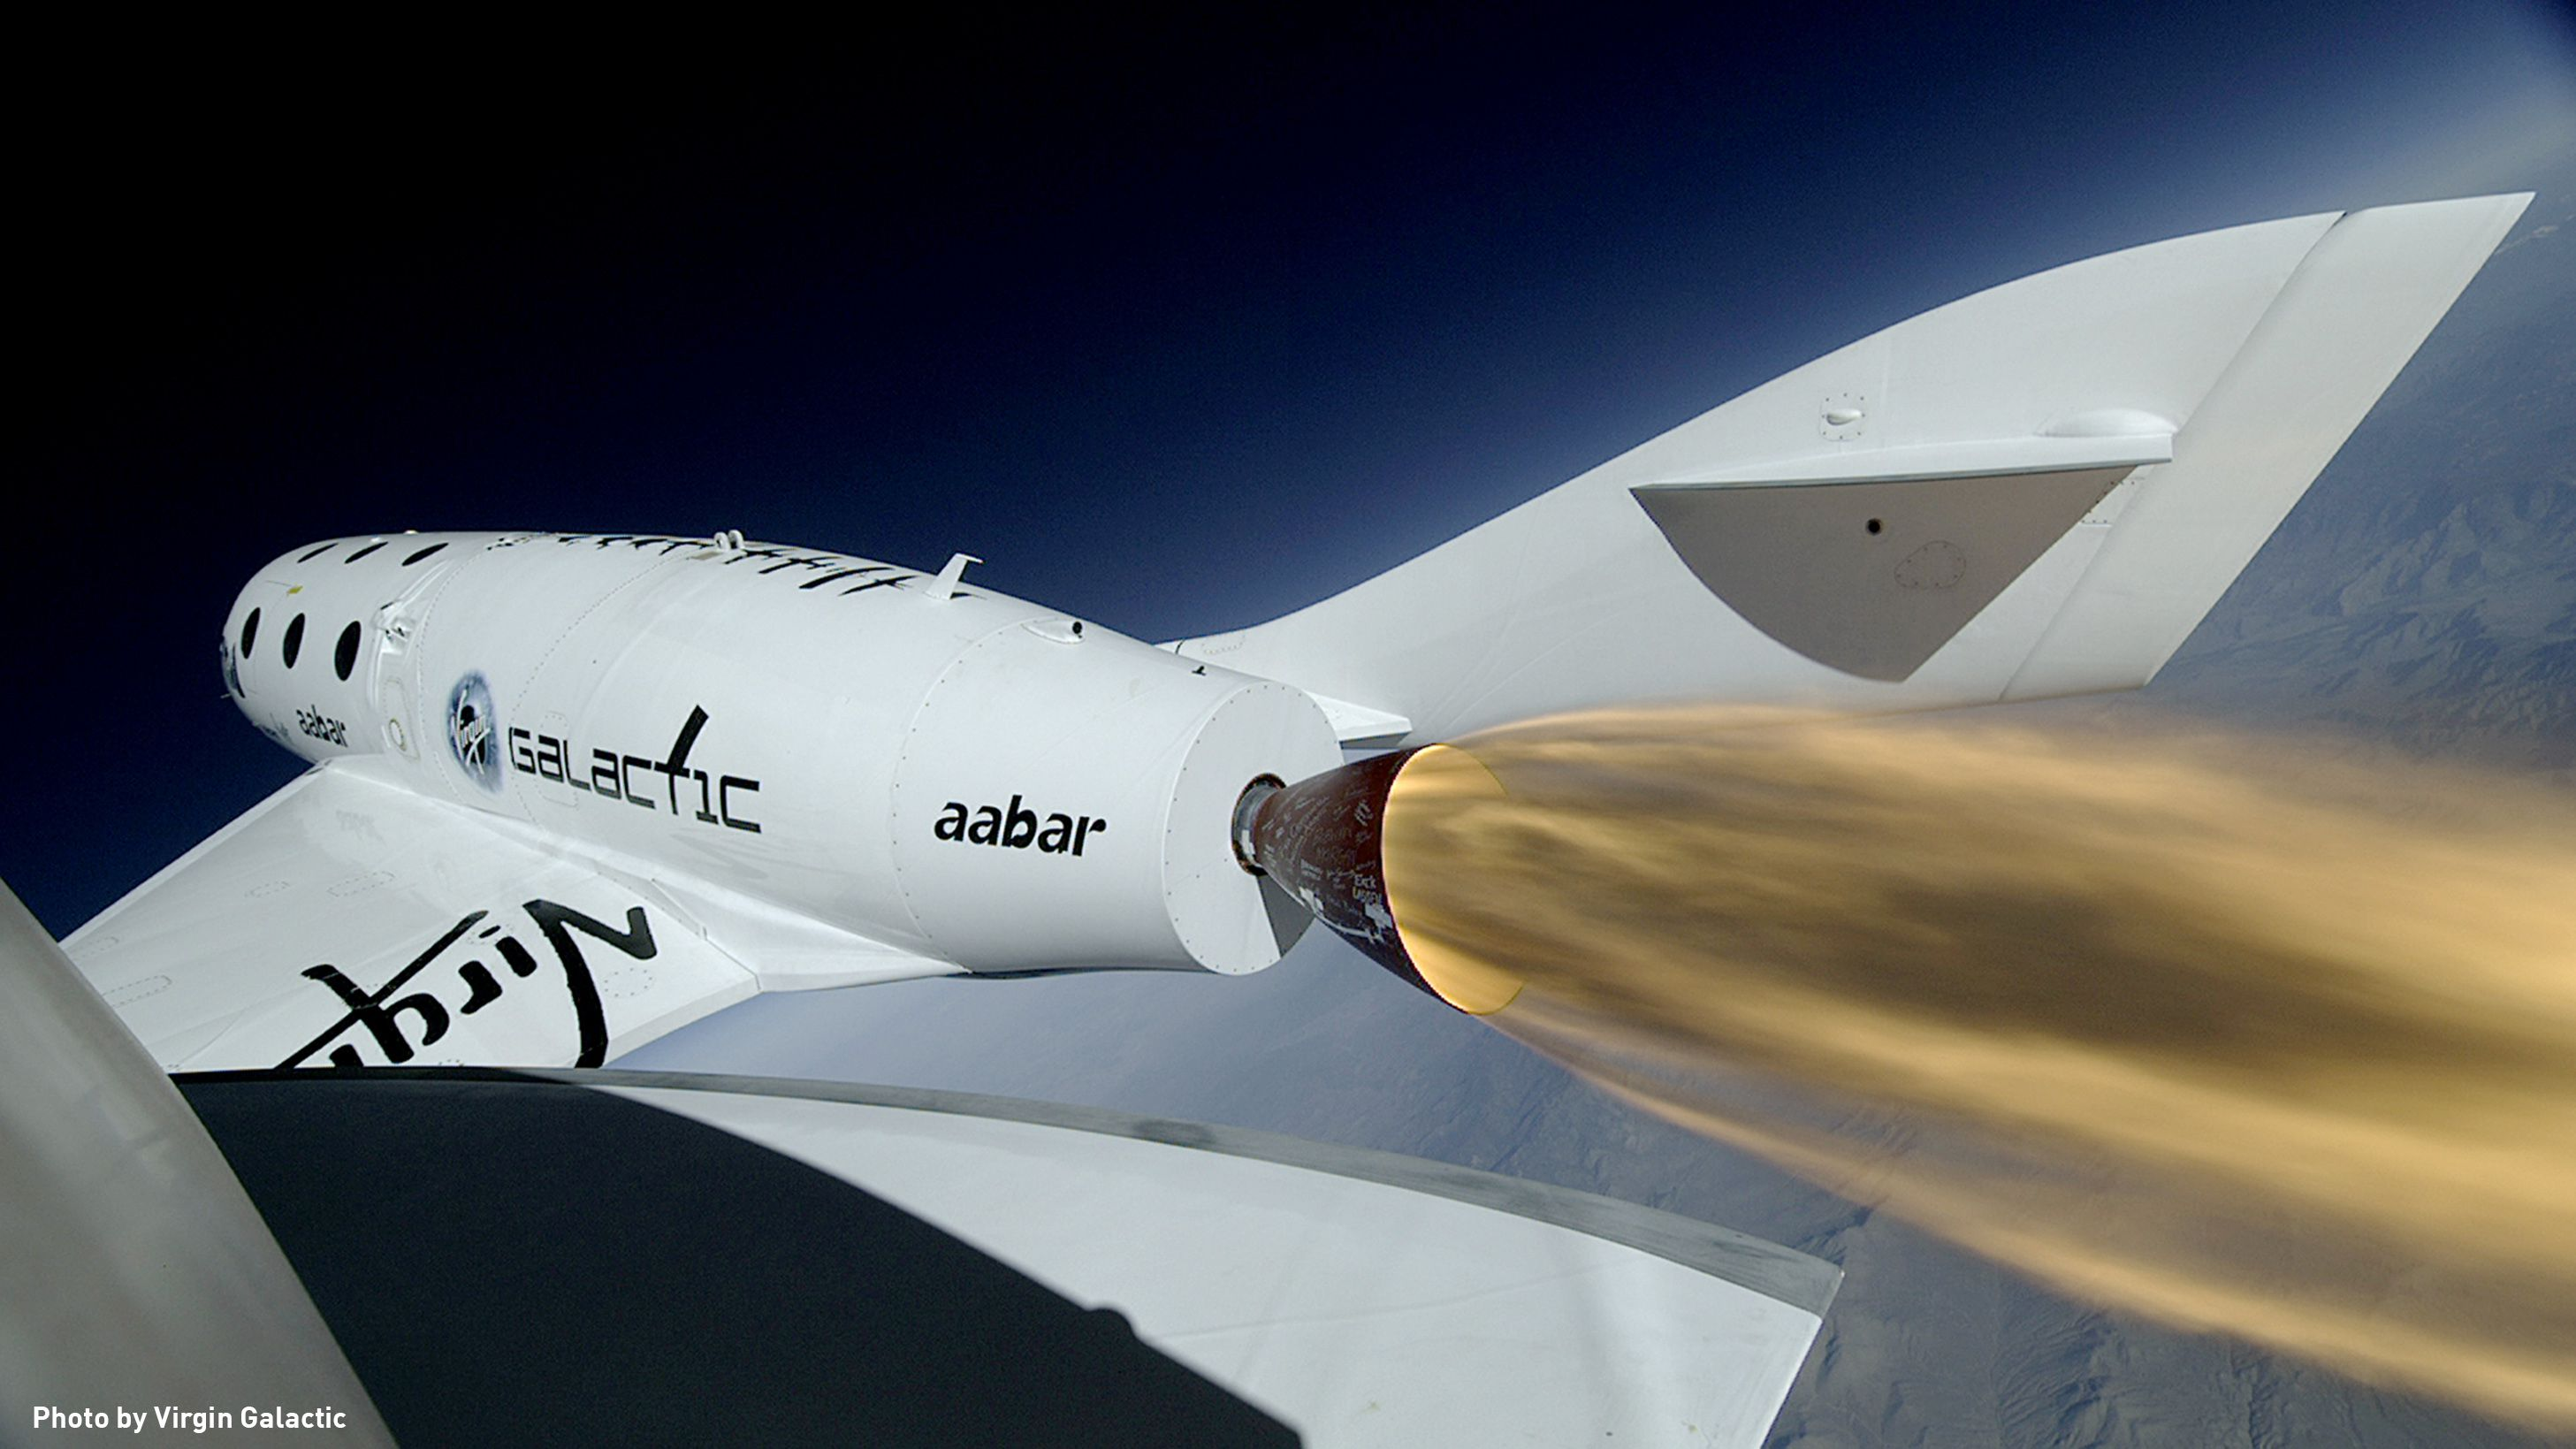 Virgin Galactic unveils new SpaceShipTwo vehicle that will ...